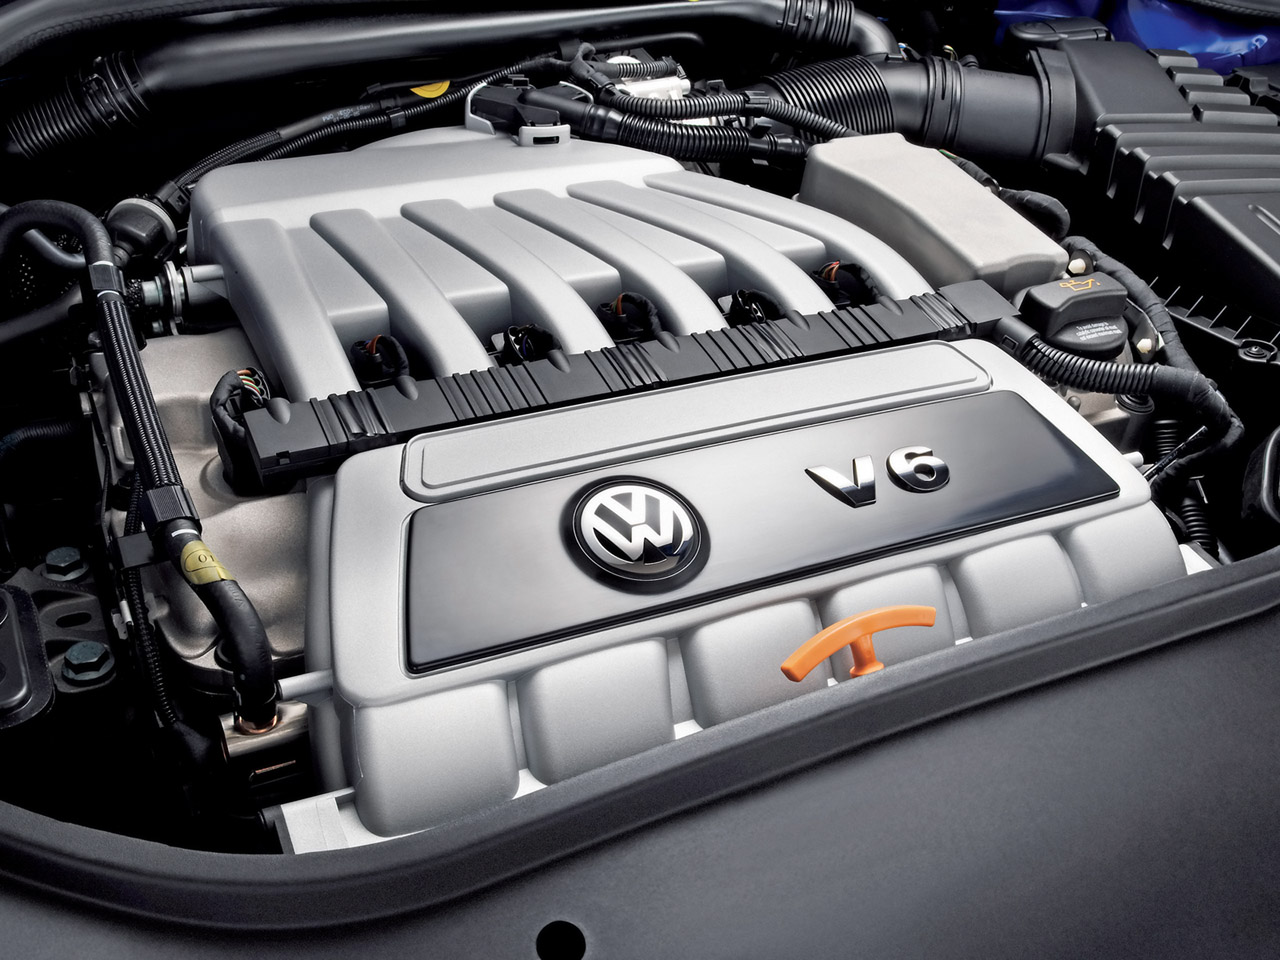 Volkswagen motor photo - 5